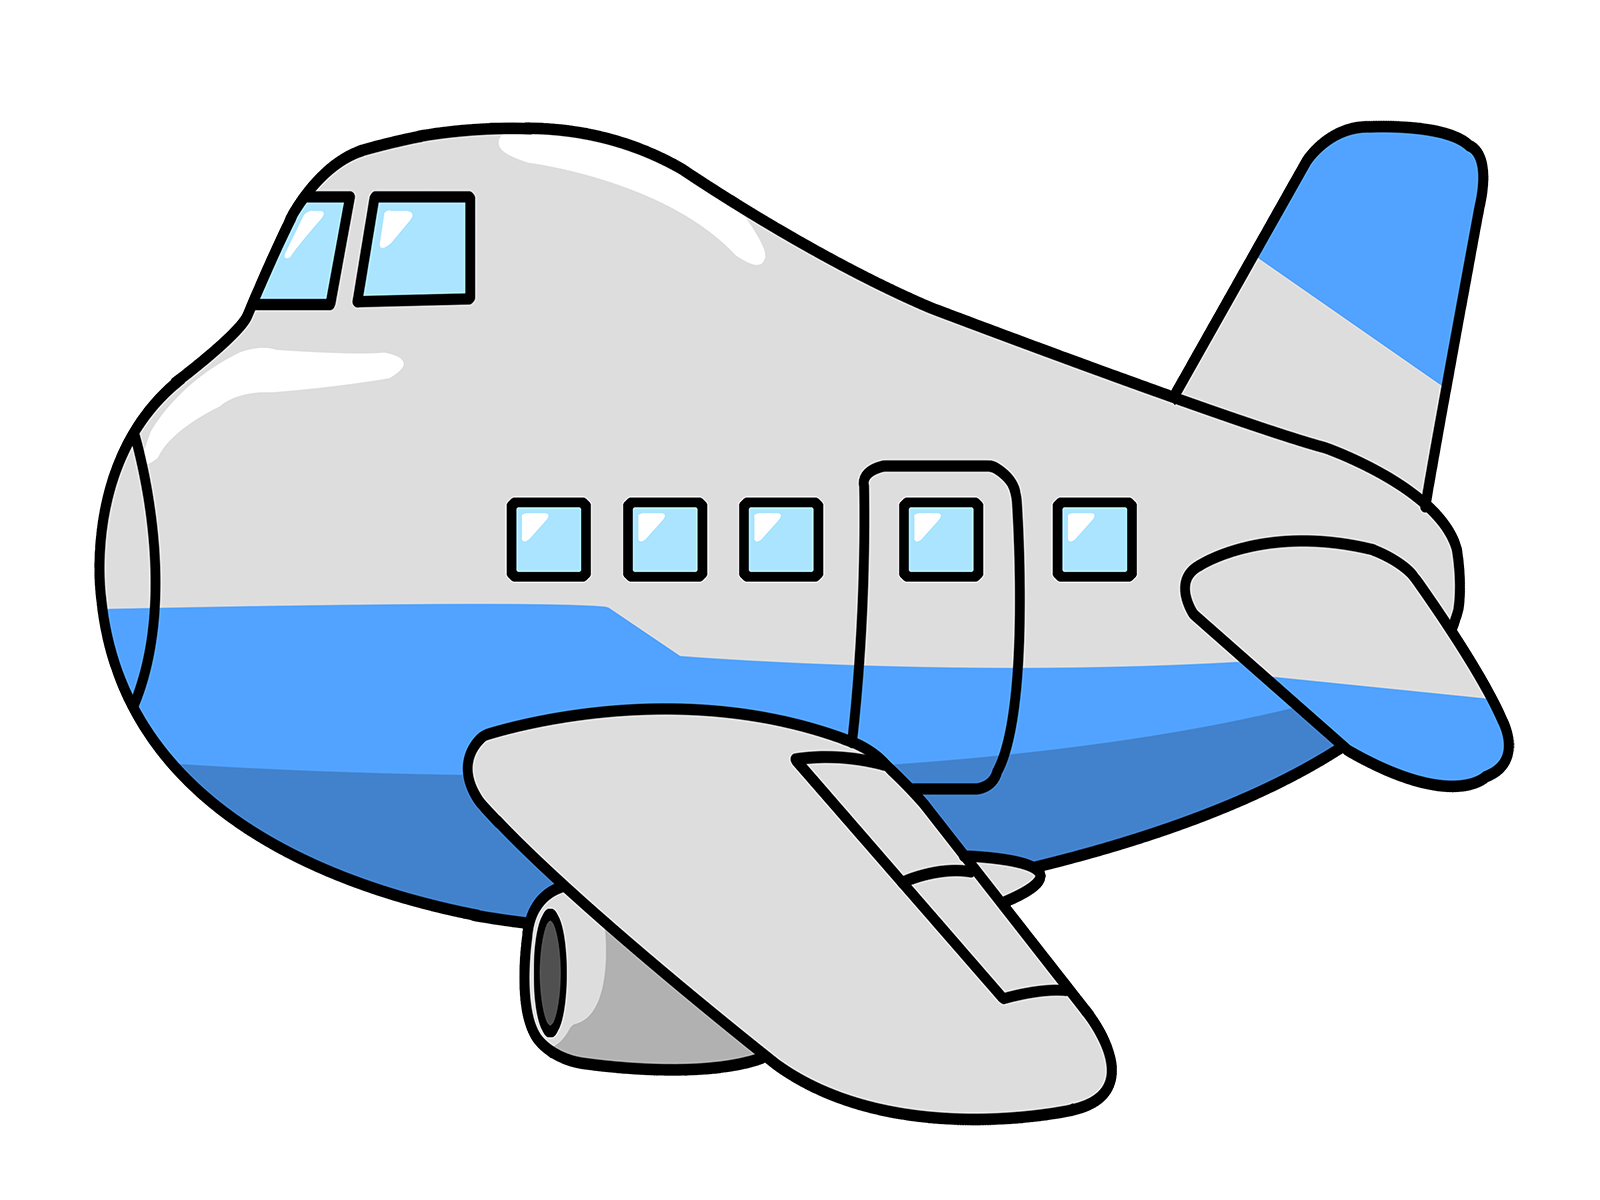 free airplane clipart at getdrawings com free for personal use rh getdrawings com airplane clipart silhouette airplane clipart no background